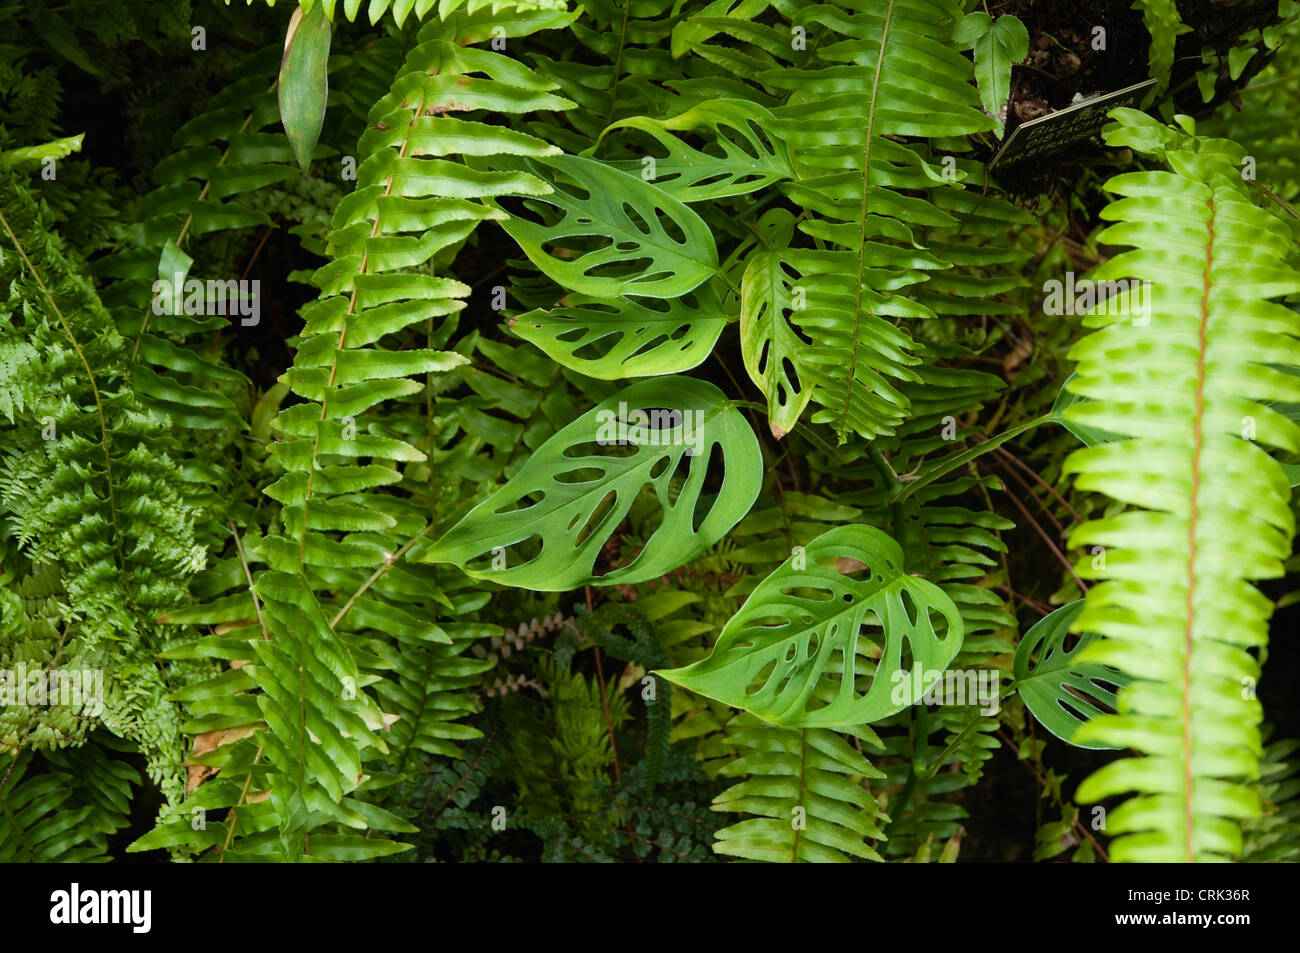 Ferns and leaves, growing in a tropical greenhouse.  UK - Stock Image